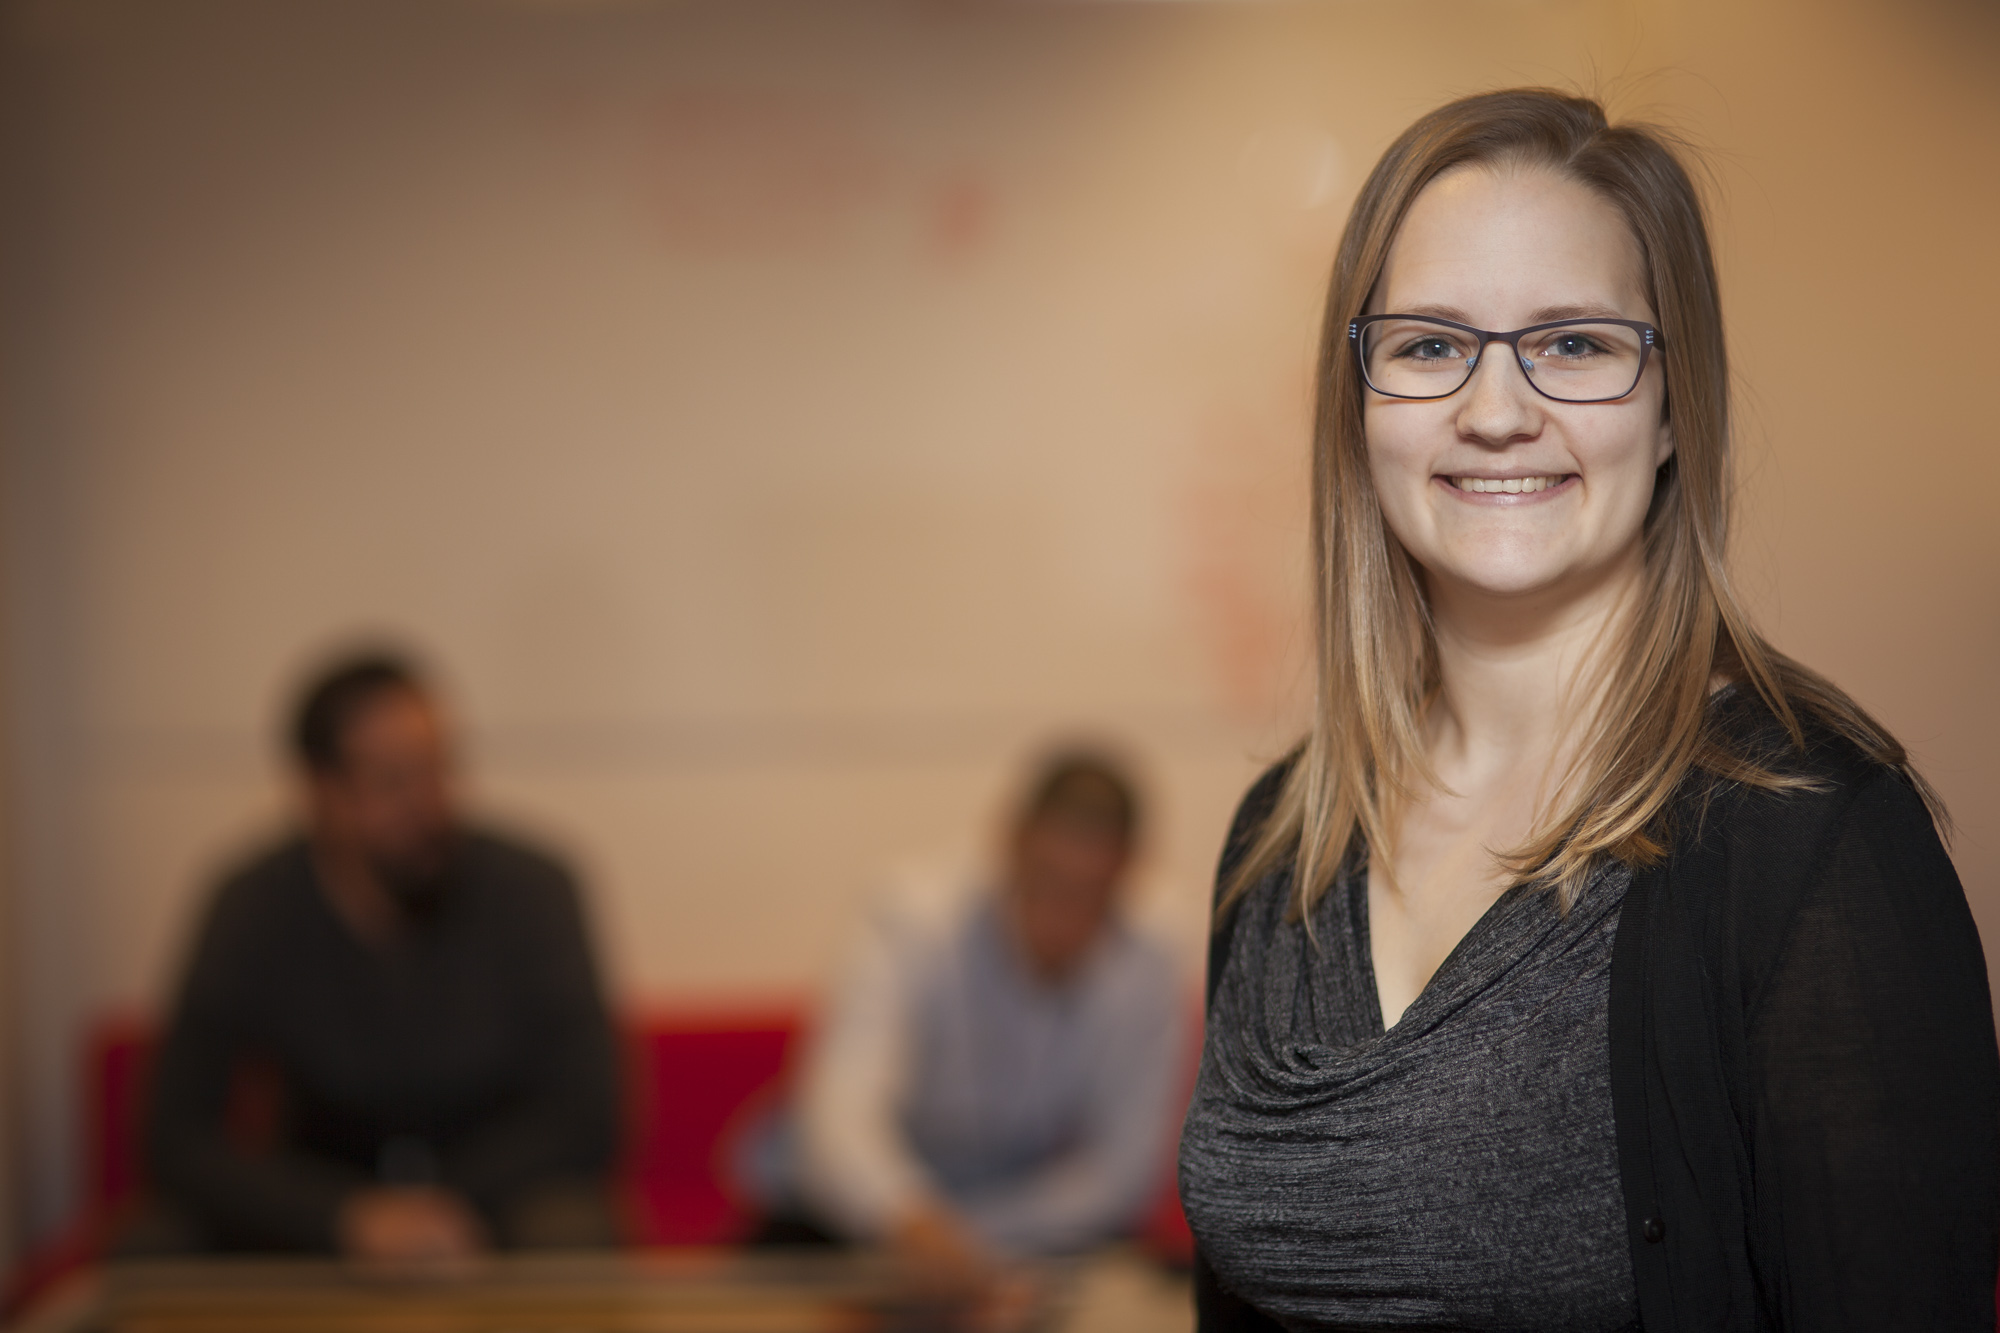 Linn Hege Molberg Bade is software engineer in Schibsted Products and Technology in Oslo